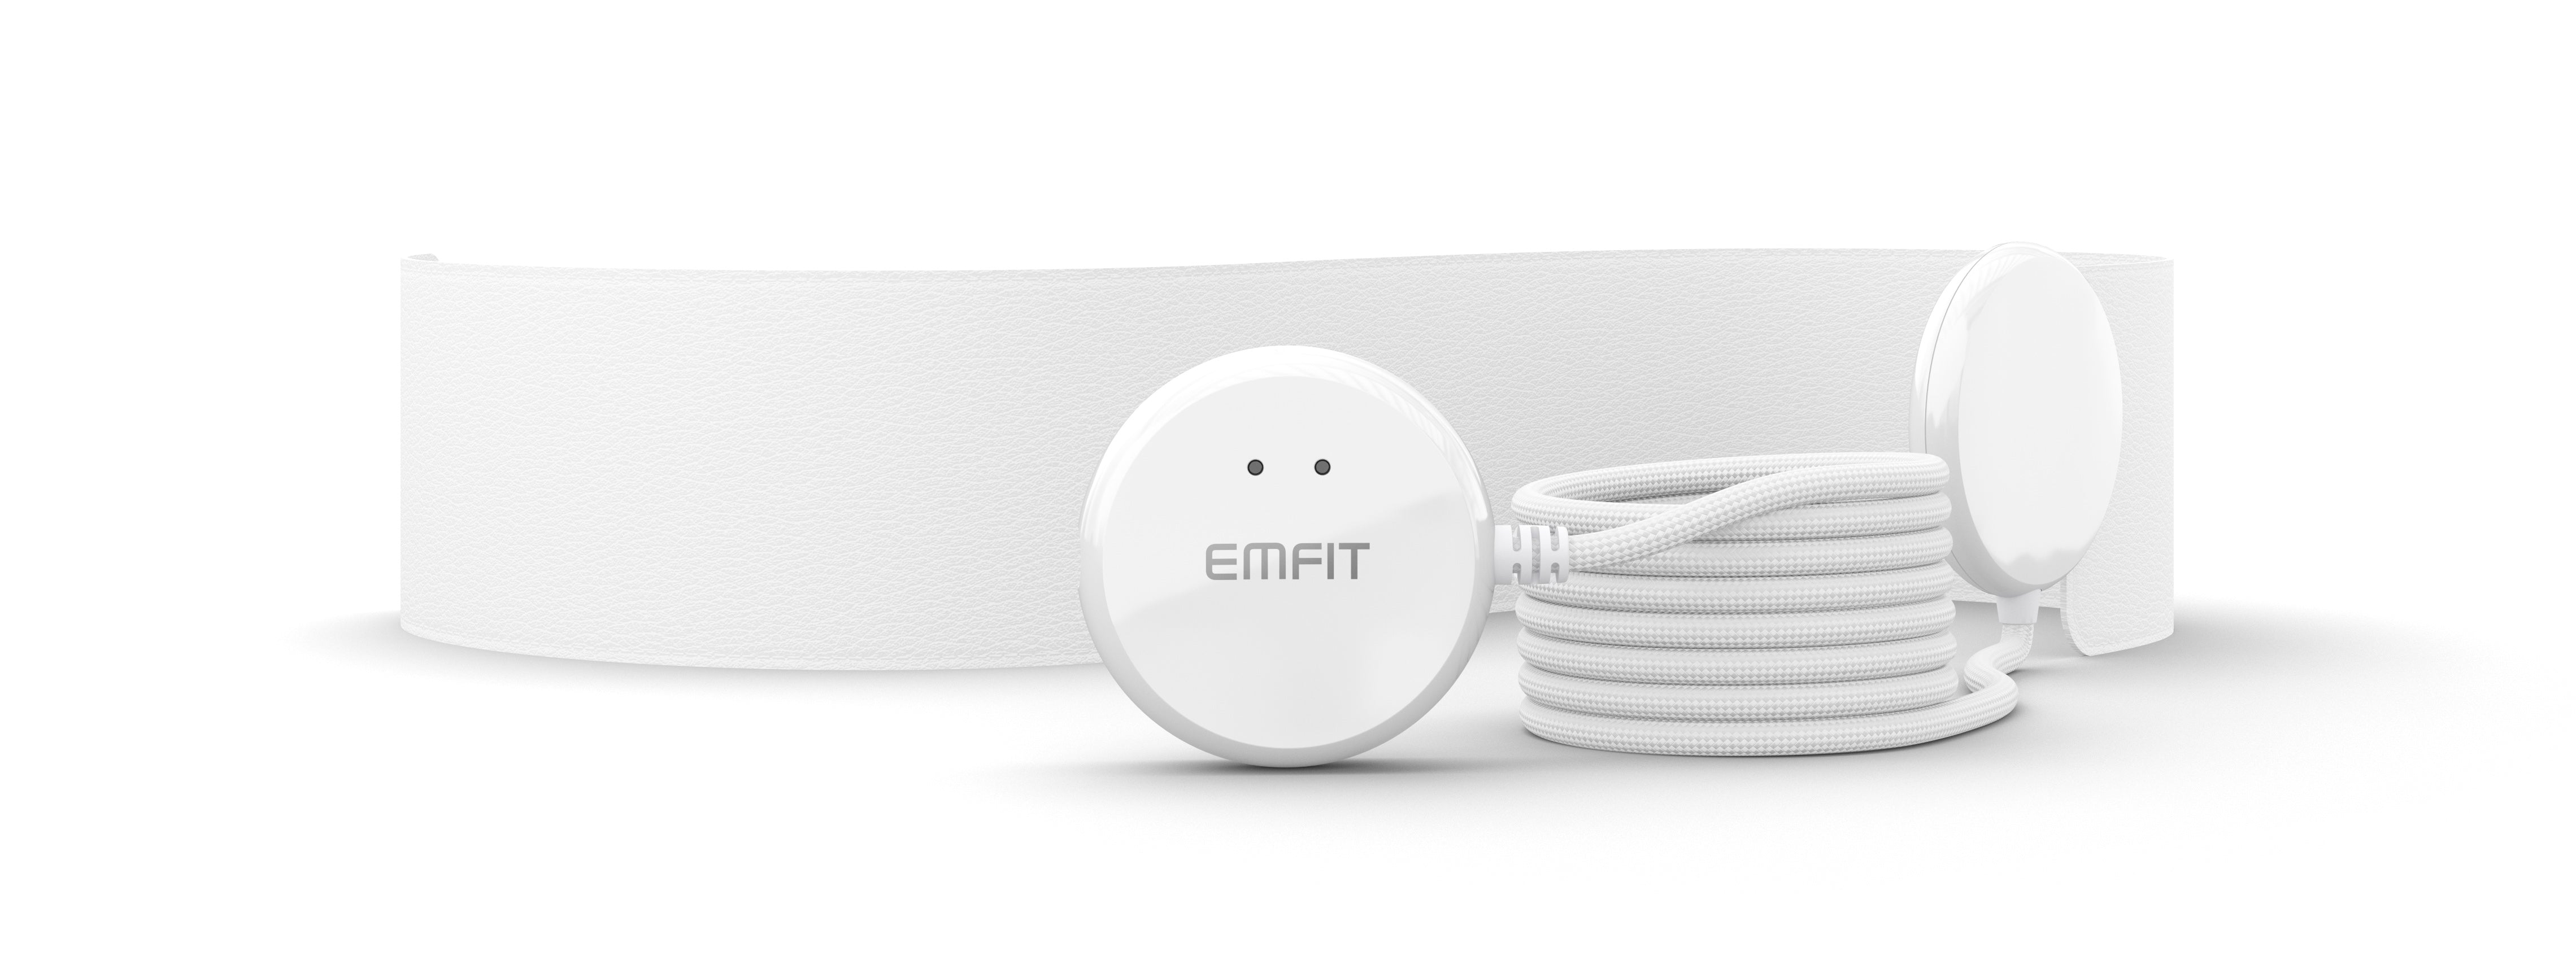 EMFIT QS+ACTIVE™ – Sleep Tracker & Monitor with Heart-Rate-Variability – Under Mattress Sleeptracker - Helps You Sleep Better